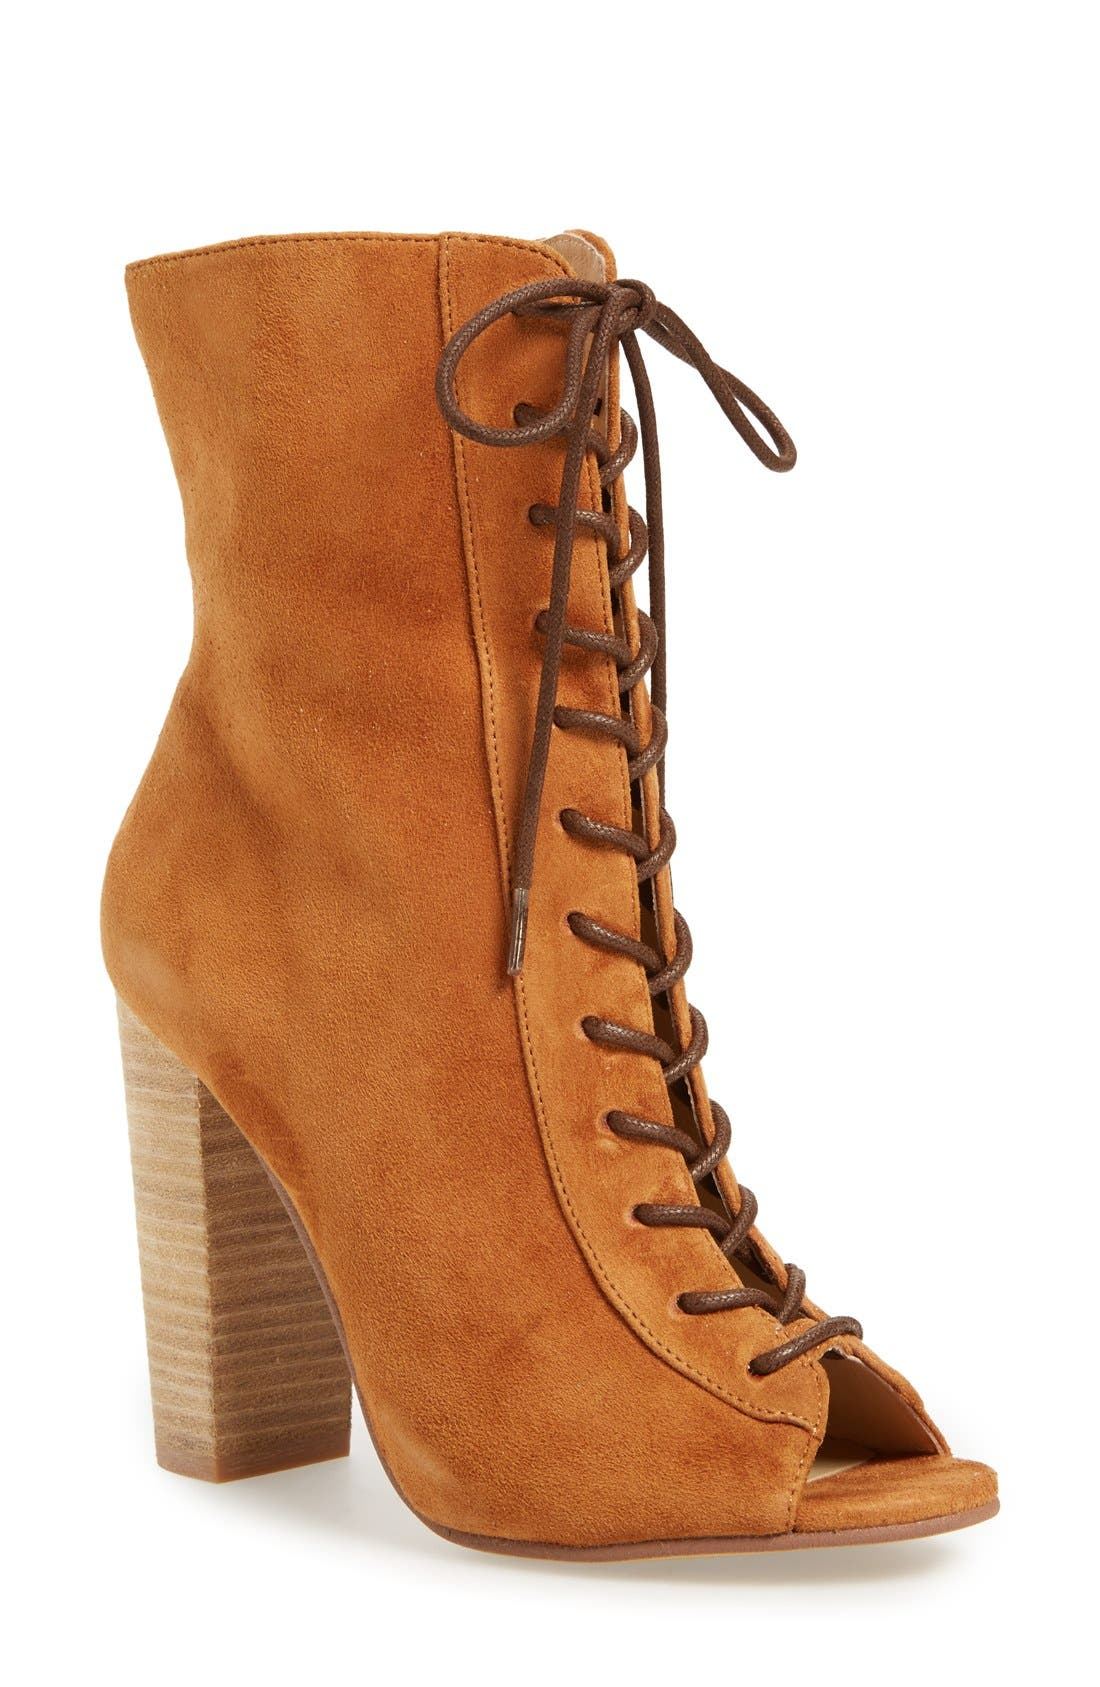 Main Image - Kristin Cavallari 'Lawless' Lace-Up Bootie (Women)